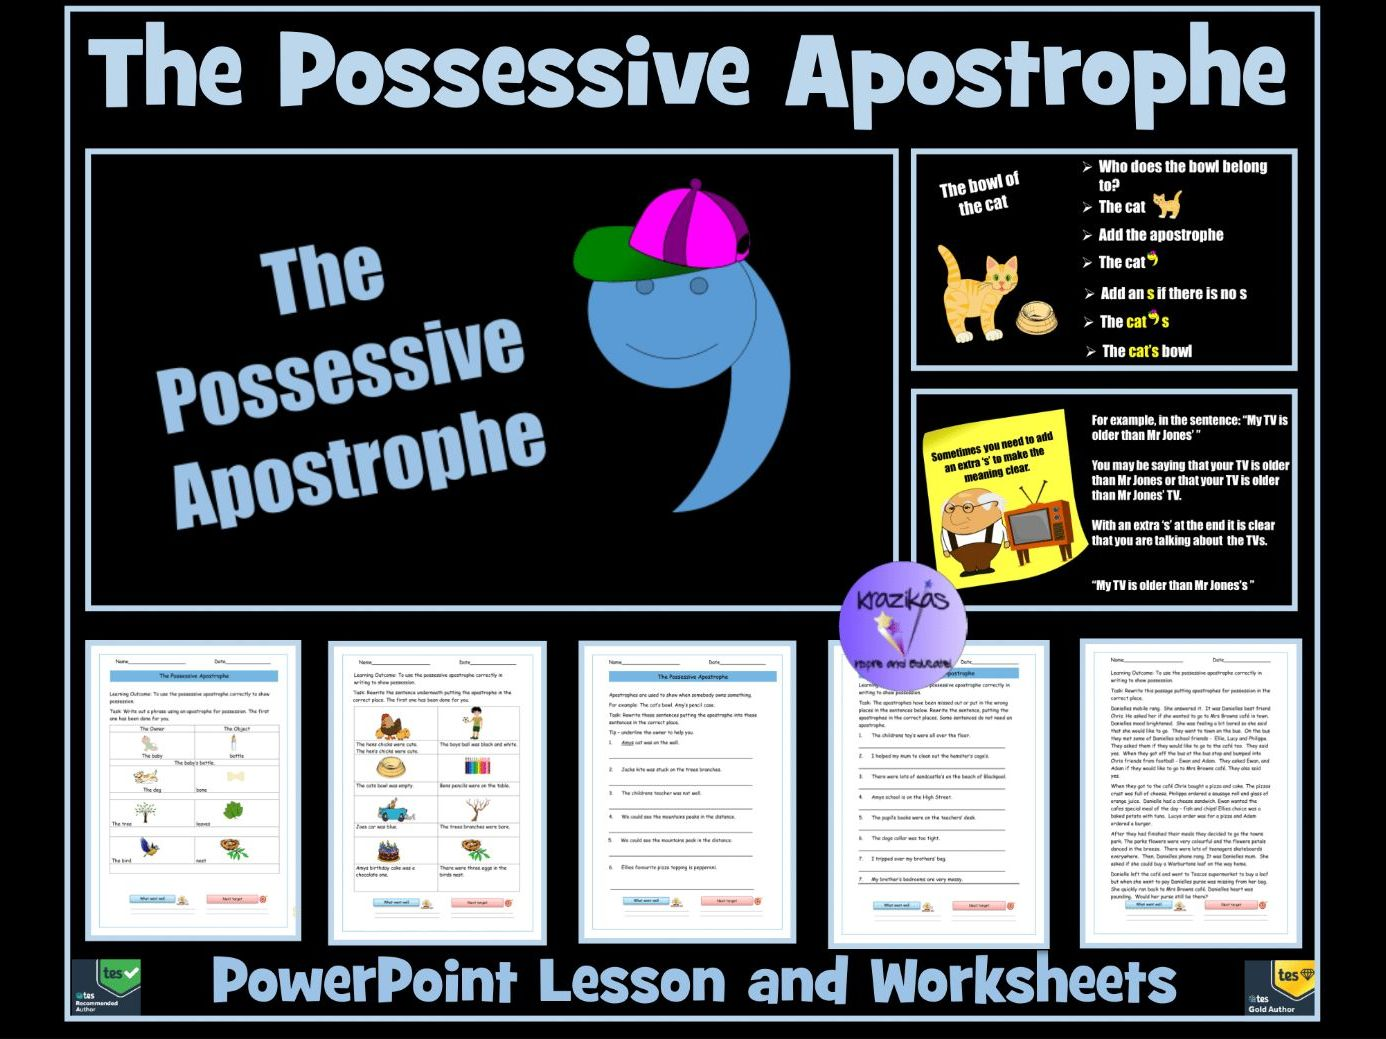 The Possessive Apostrophe / Apostrophe for Possession Bundle: PowerPoint Lesson and Worksheets